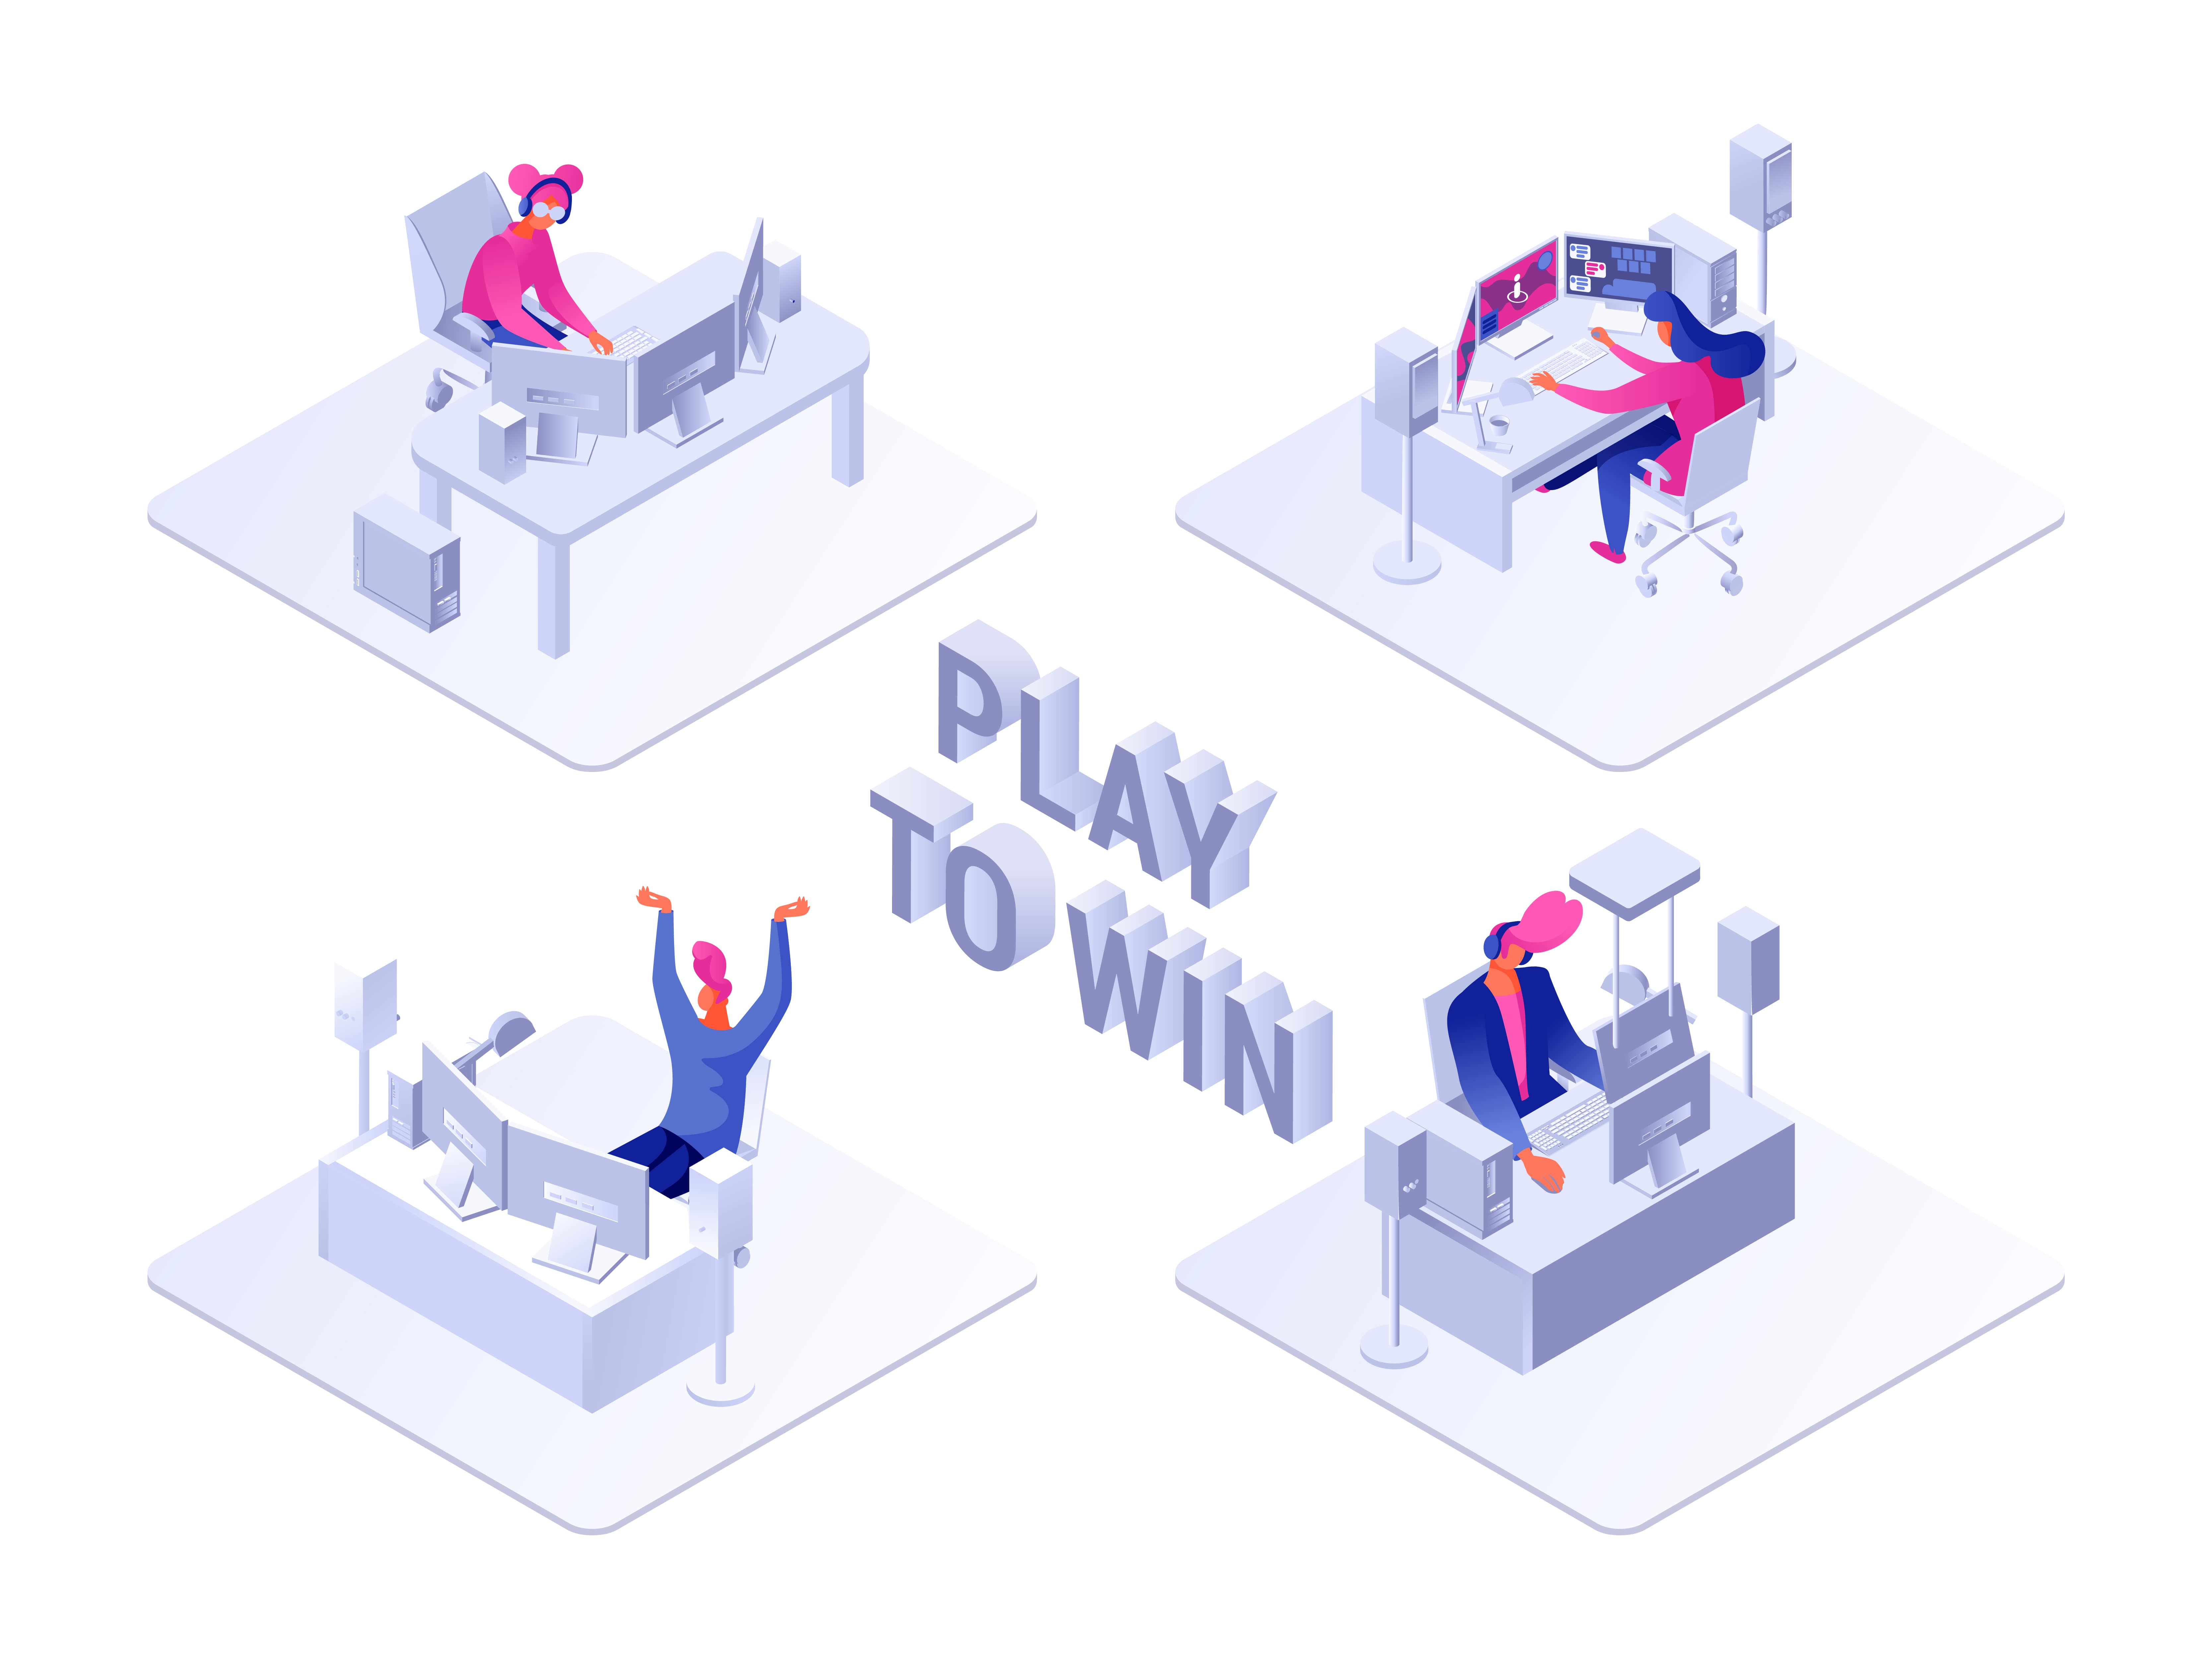 Play to win gamer contest